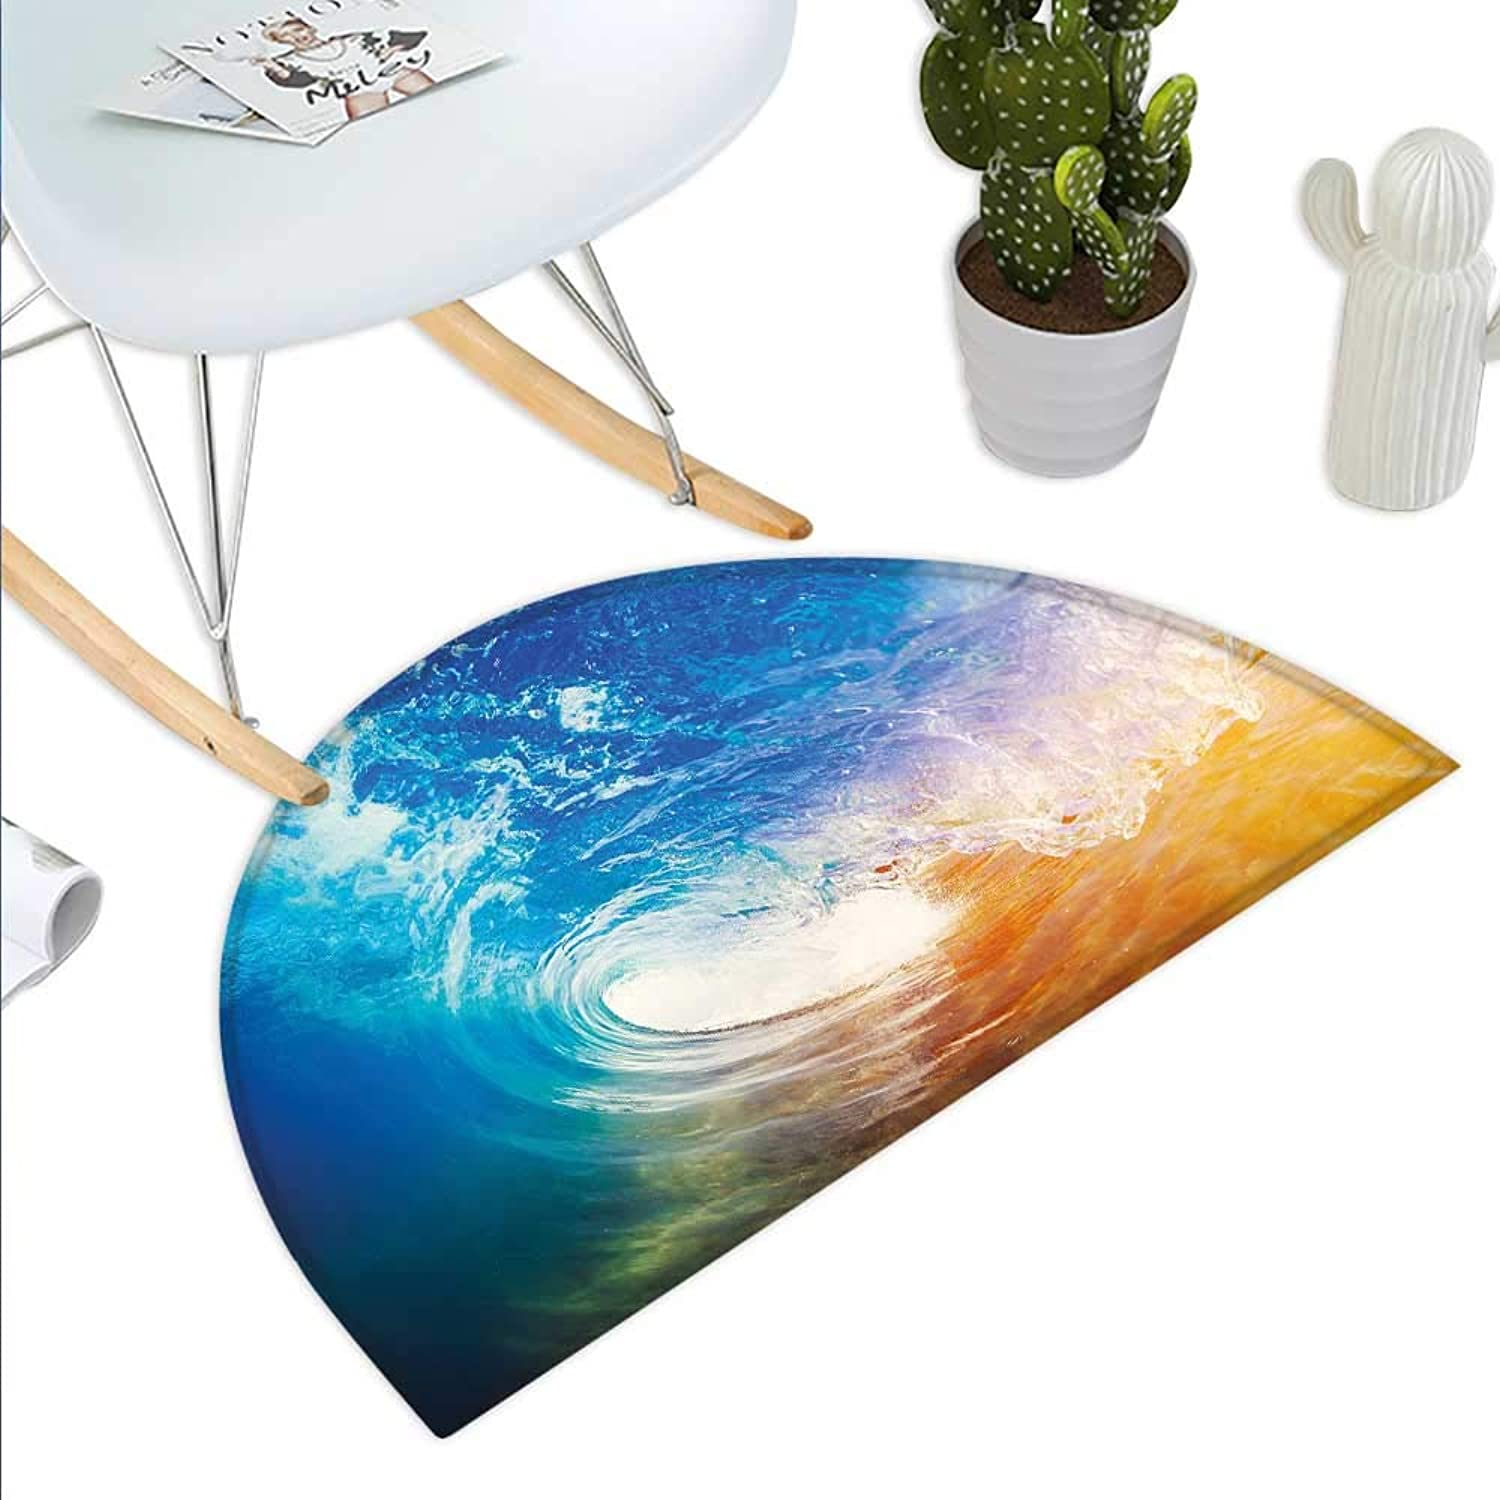 Wave Semicircle Doormat Huge Vibrant Ocean Wave Crashing at Sunrise Water Splash Summer Surfing Theme Halfmoon doormats H 39.3  xD 59  bluee orange White